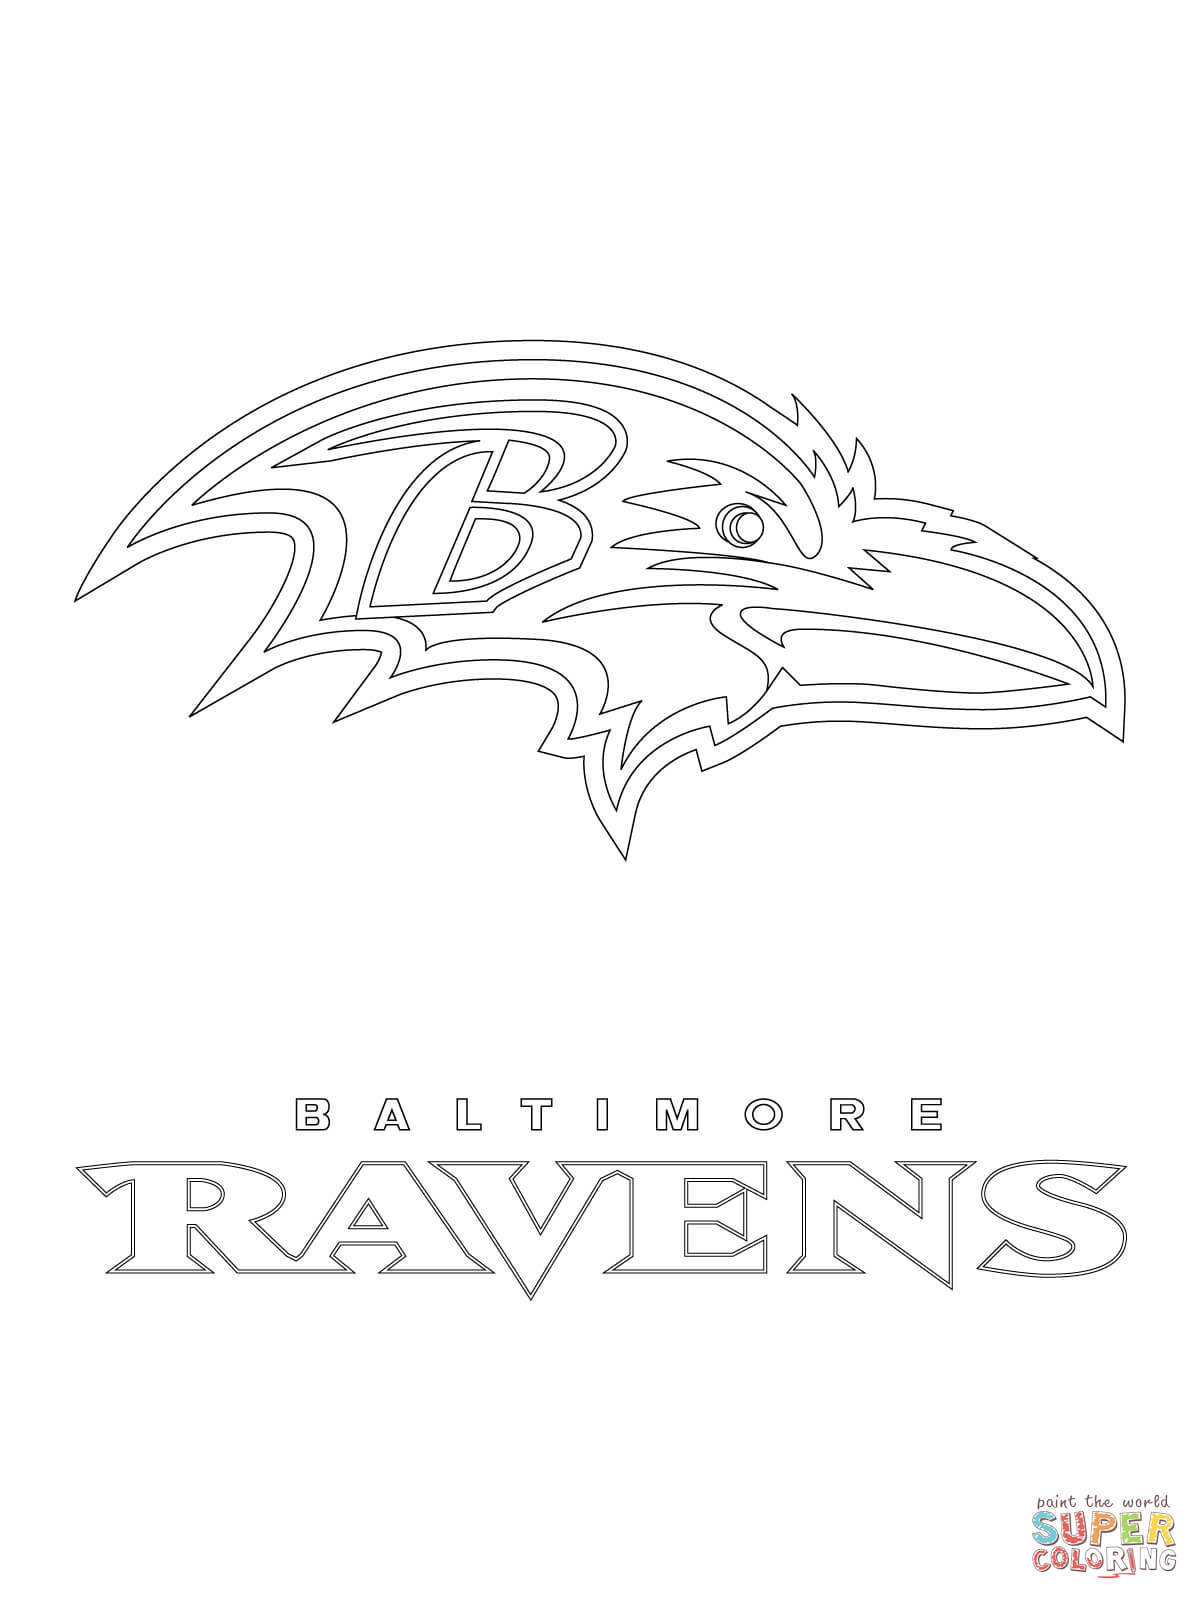 seahawks coloring pages to print seattle seahawks free coloring pages seattle seahawks coloring to seahawks pages print